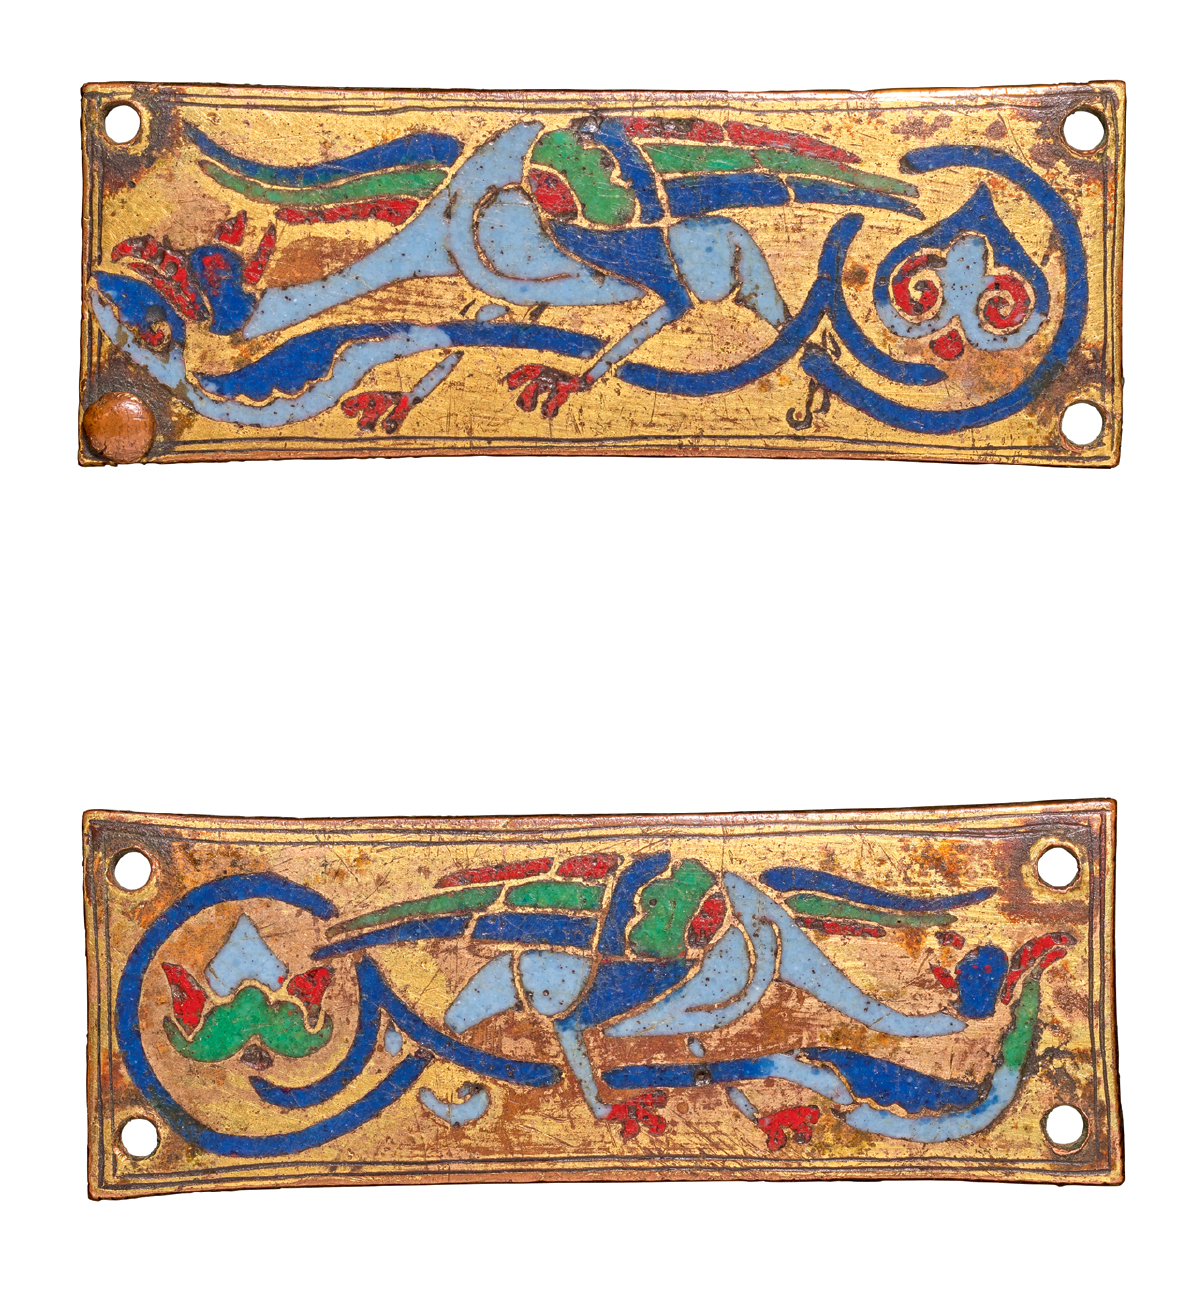 SPANISH, POSSIBLY SILOS, OR FRENCH, LIMOGES, THIRD QUARTER 12TH CENTURY | PAIR OF PLAQUES WITH MYTHICAL BIRDS